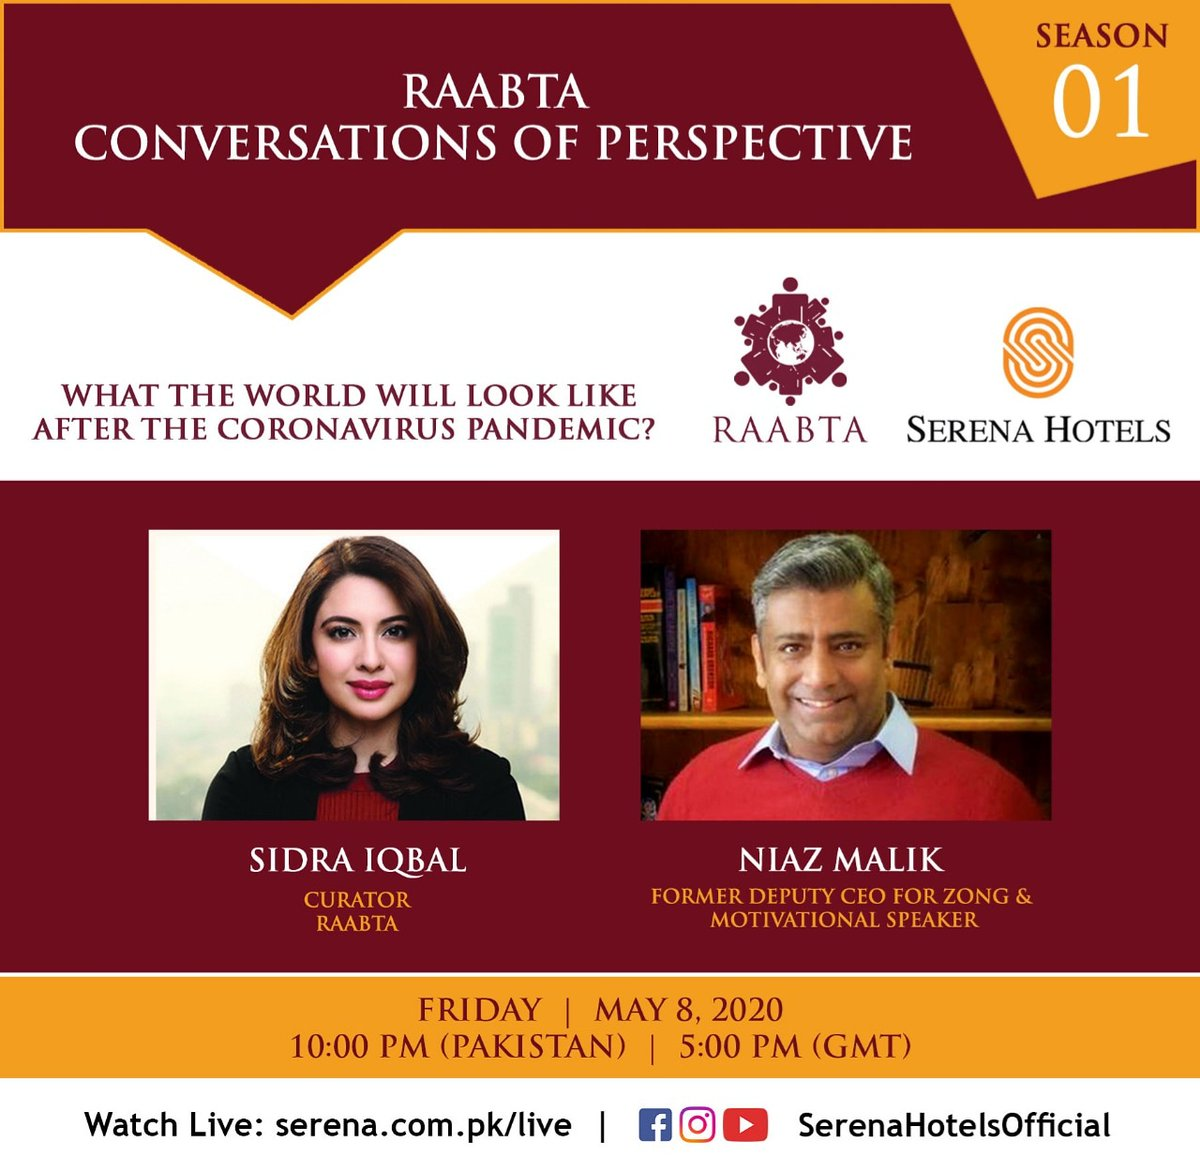 Sidra Iqbal, Curator Raabta in conversation with Niaz Malik, Former Deputy CEO Zong and celebrated strategy and motivational speaker. This conversation is about Finding Meaning in Adversity.   Watch Live on Friday, 08 May at 10:00 pm (PST)    https://t.co/CKL9uloMfi https://t.co/mzYCch8rYB